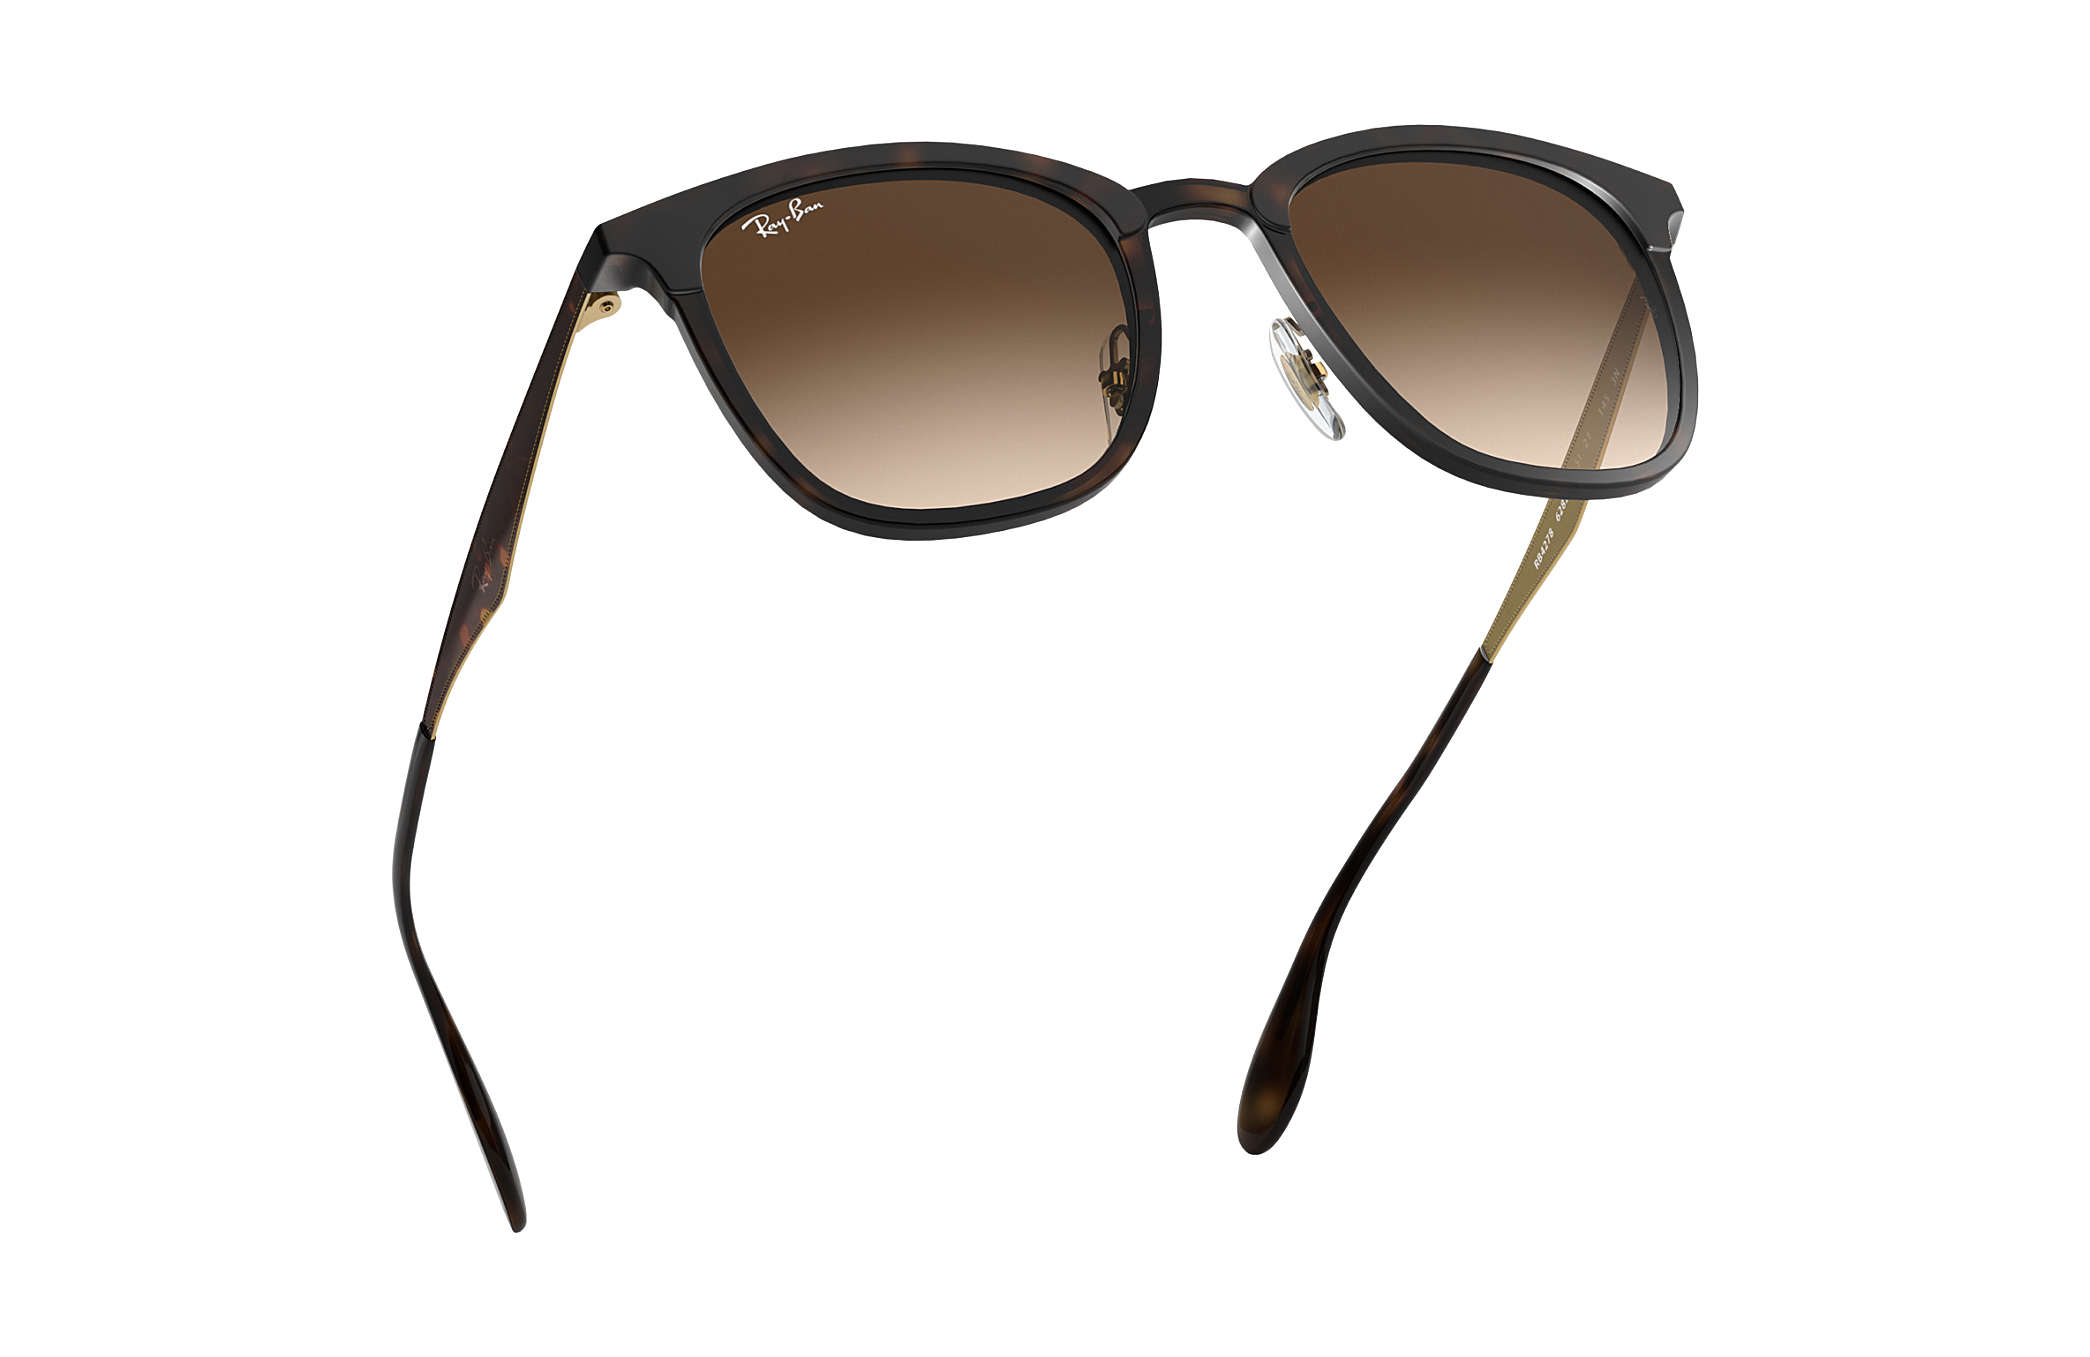 6961381e73 Ray-Ban RB4278 Havana - Injected - Gläser